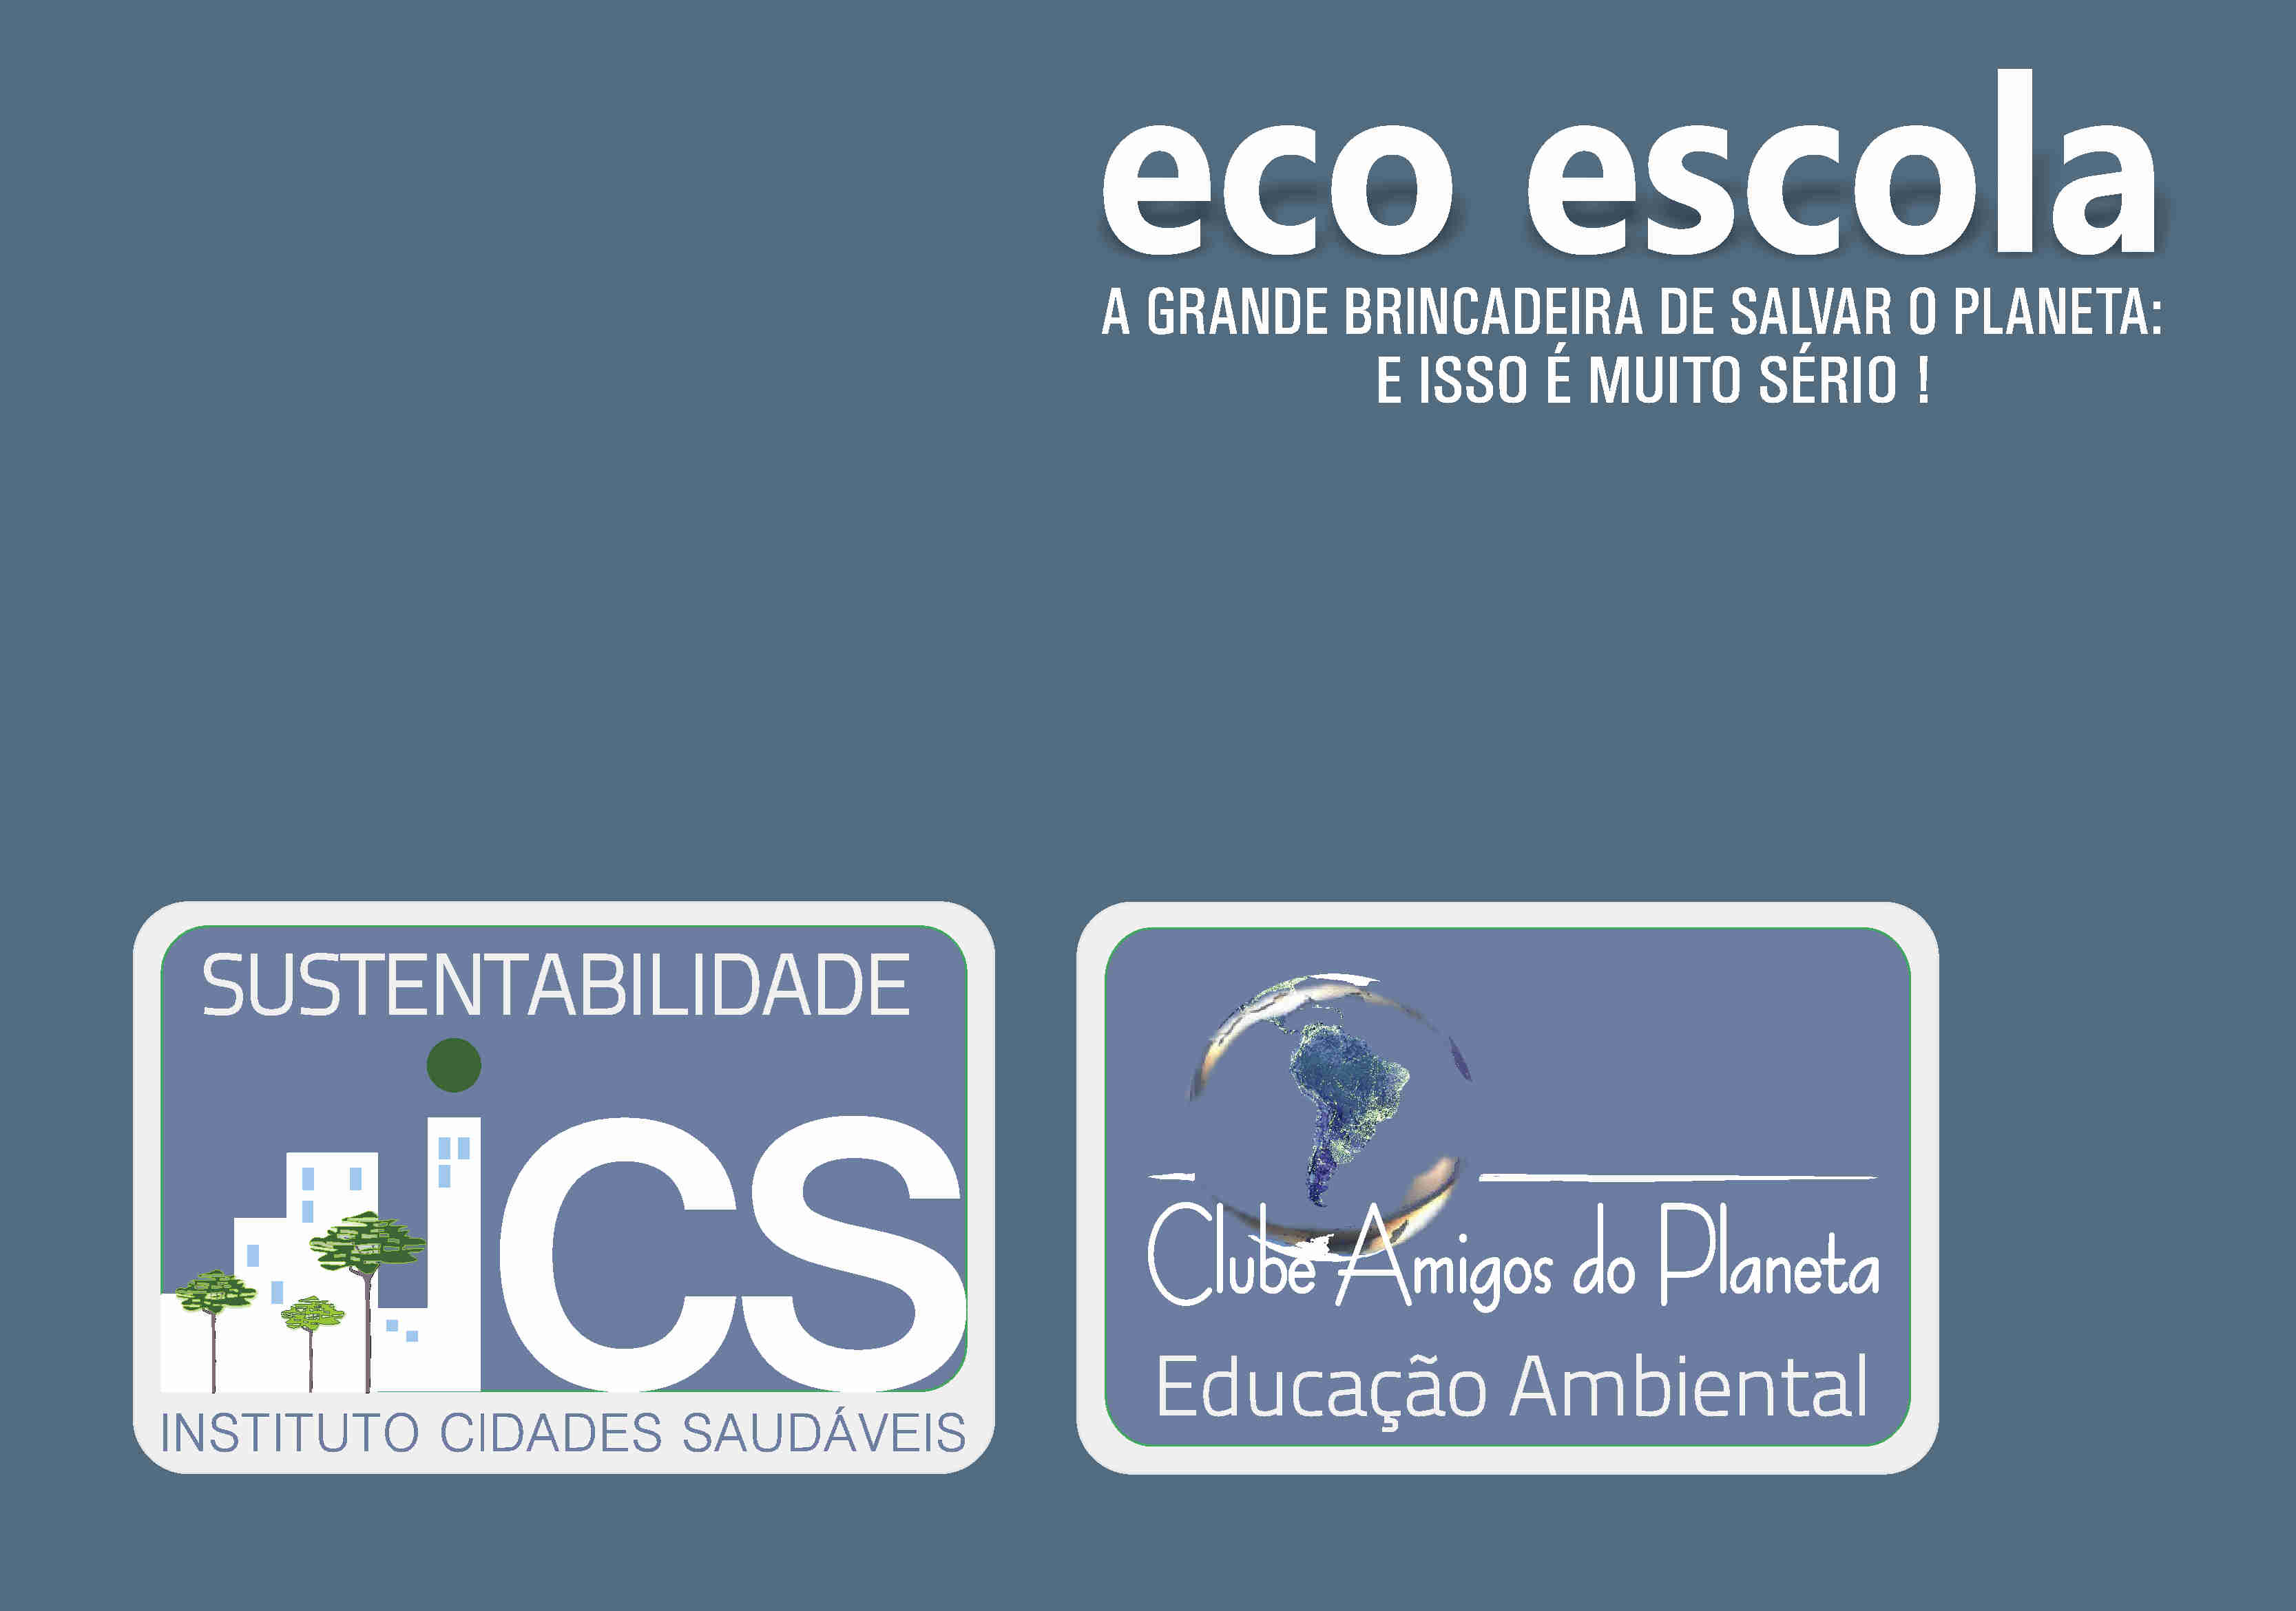 pg01_eco_escola_view2014.jpg